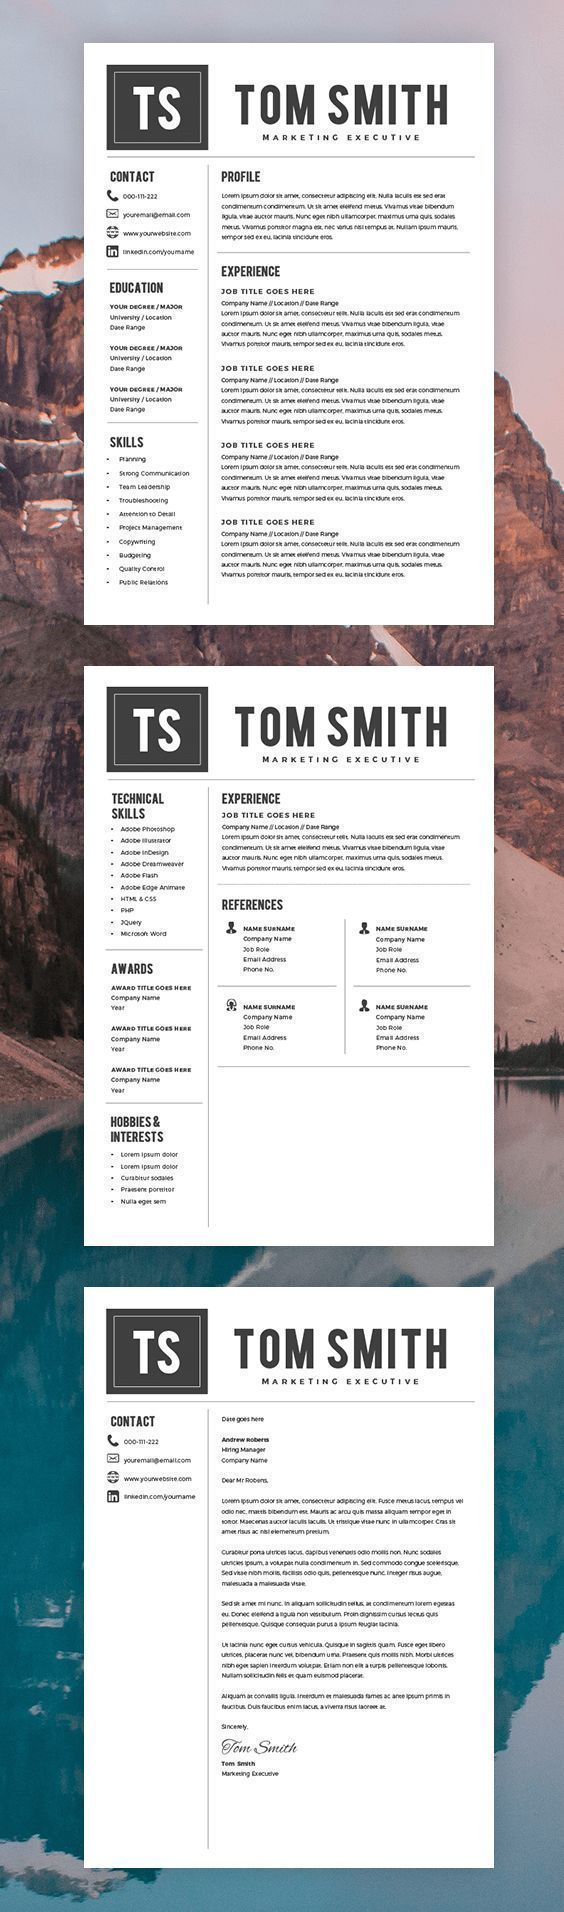 Resume Cv Templates Free Download%0A format for a letter of complaint